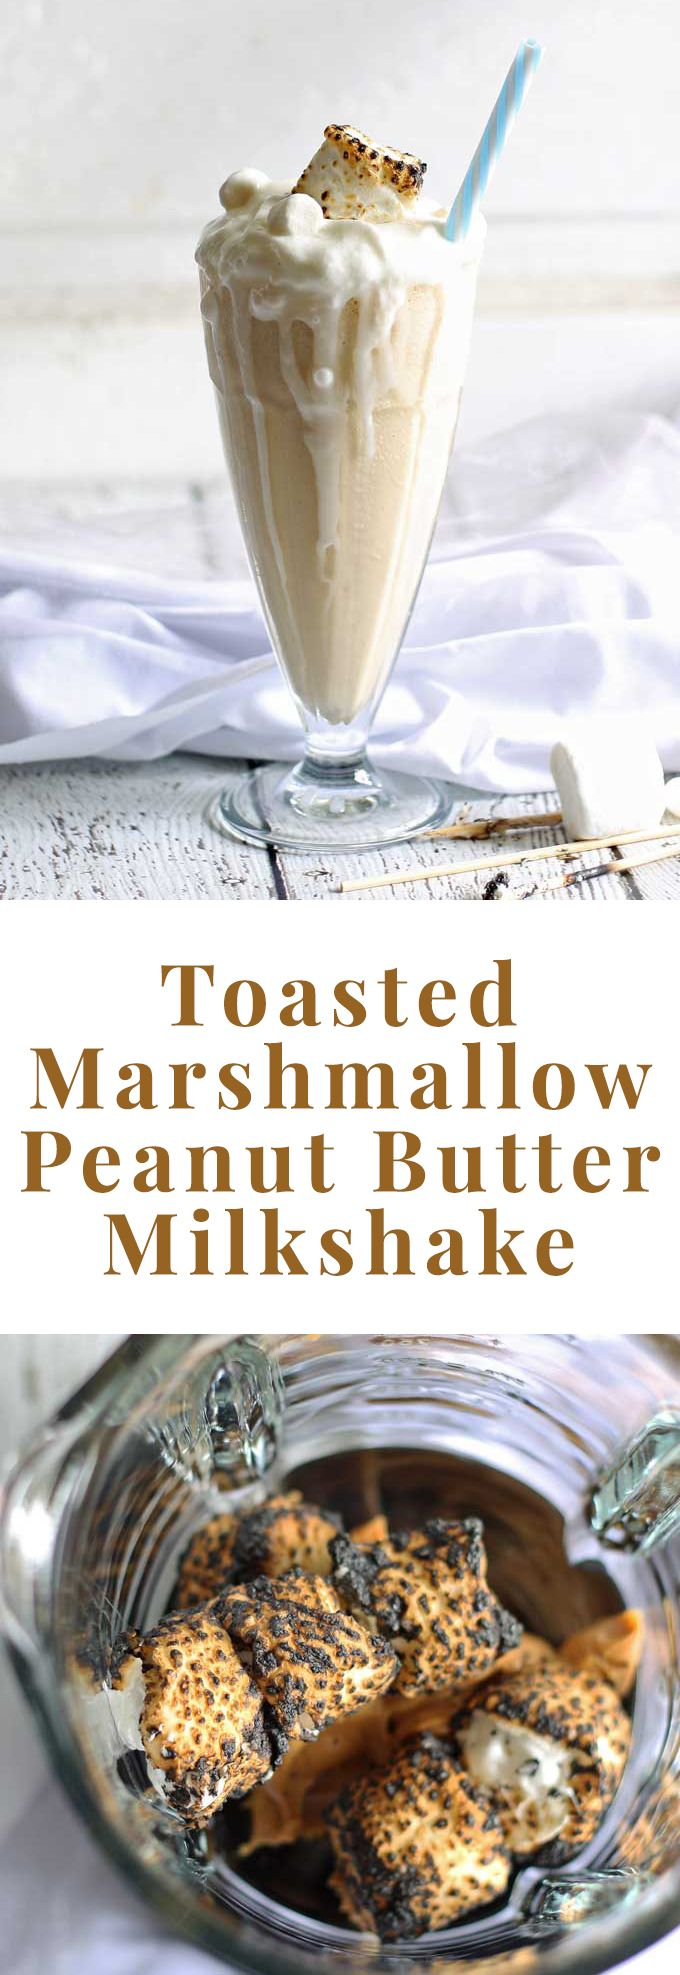 You probably have the ingredients for this toasted marshmallow peanut butter milkshake in your fridge and pantry! Make this delicious dessert beverage today! | honeyandbirch.com